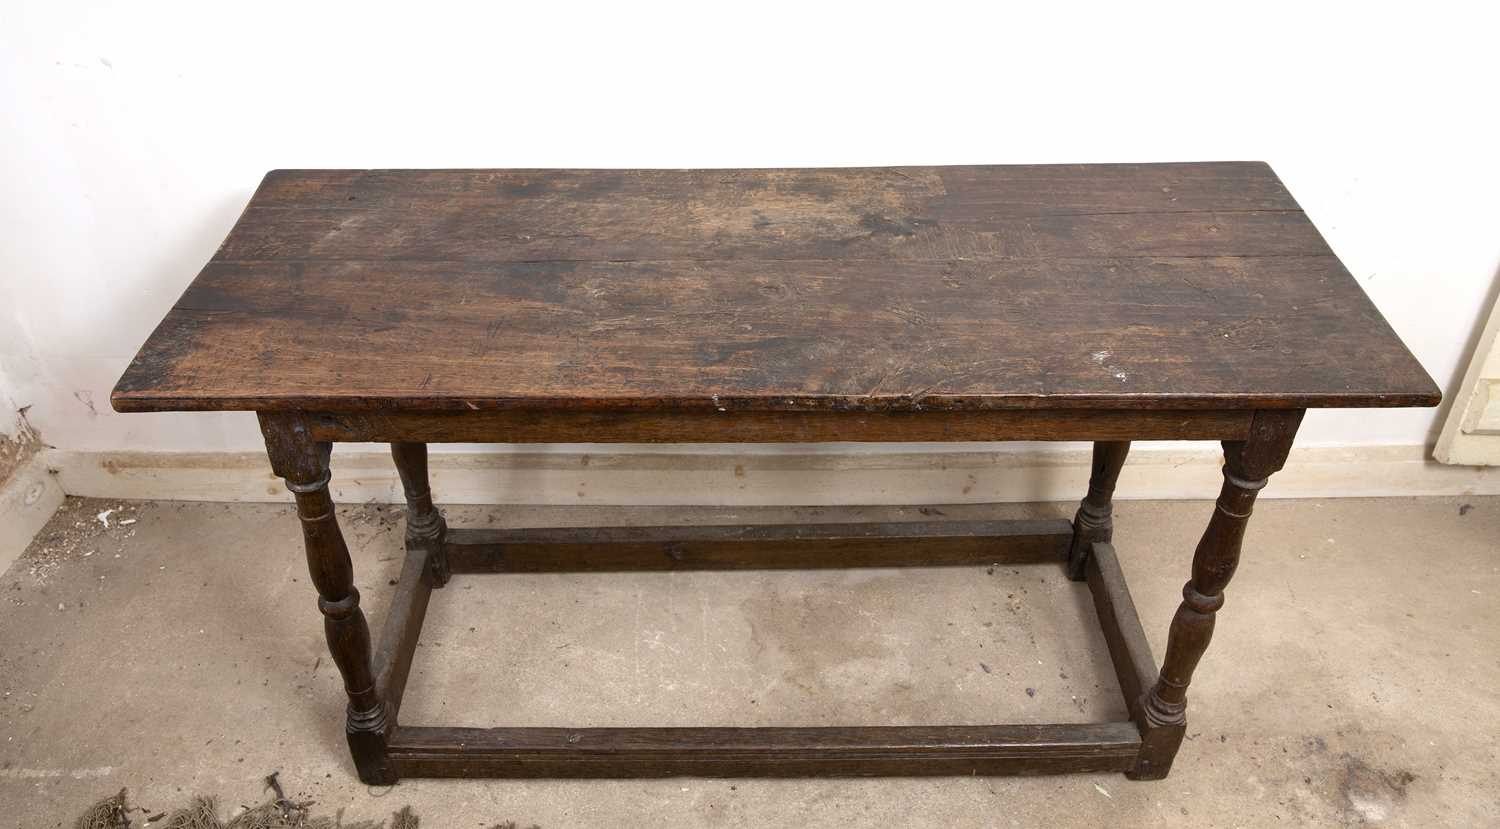 An 18th century oak rectangular side table, on baluster turned legs united by stretchers, 125cm - Image 4 of 4